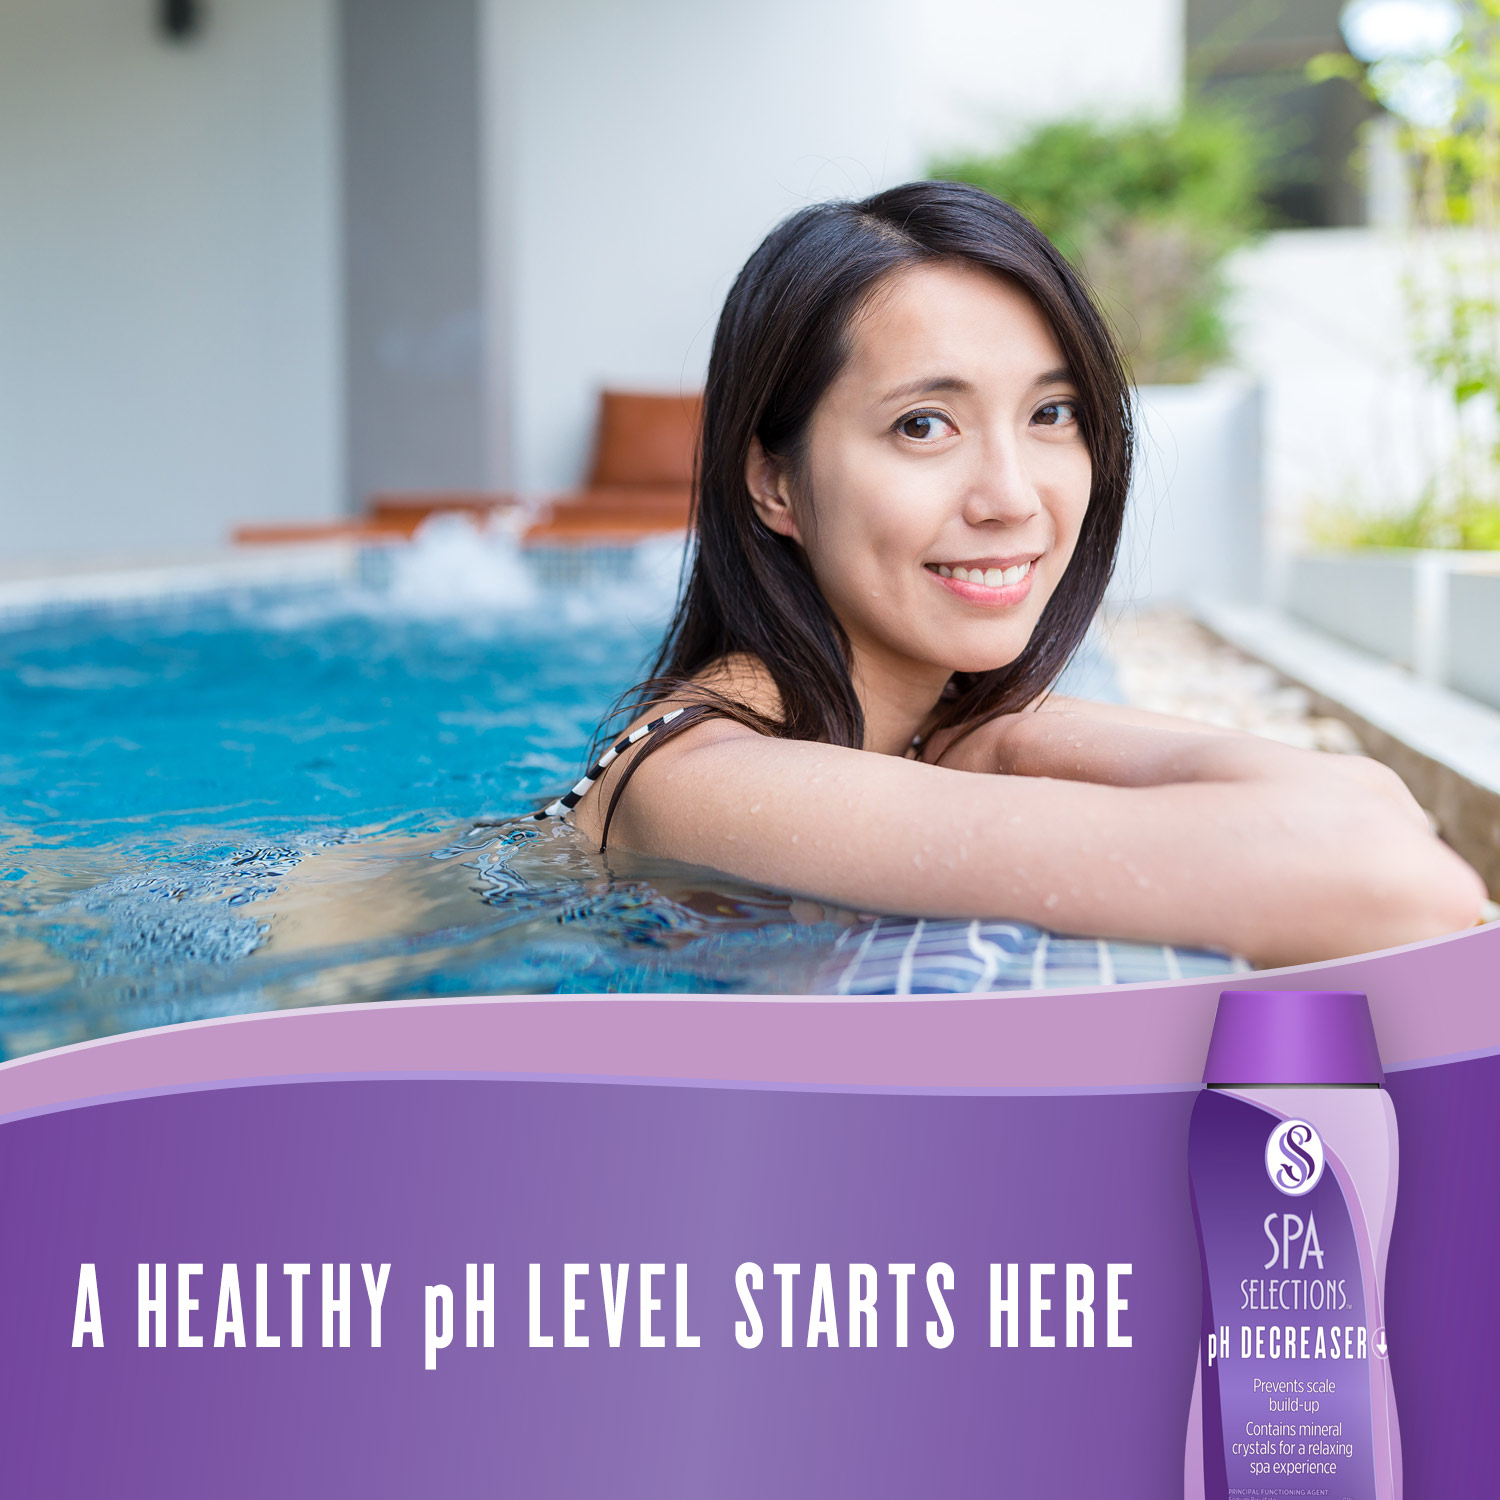 Photo of woman smiling in outdoor hot tub. A healthy pH level starts with Spa Selections pH Decreaser.